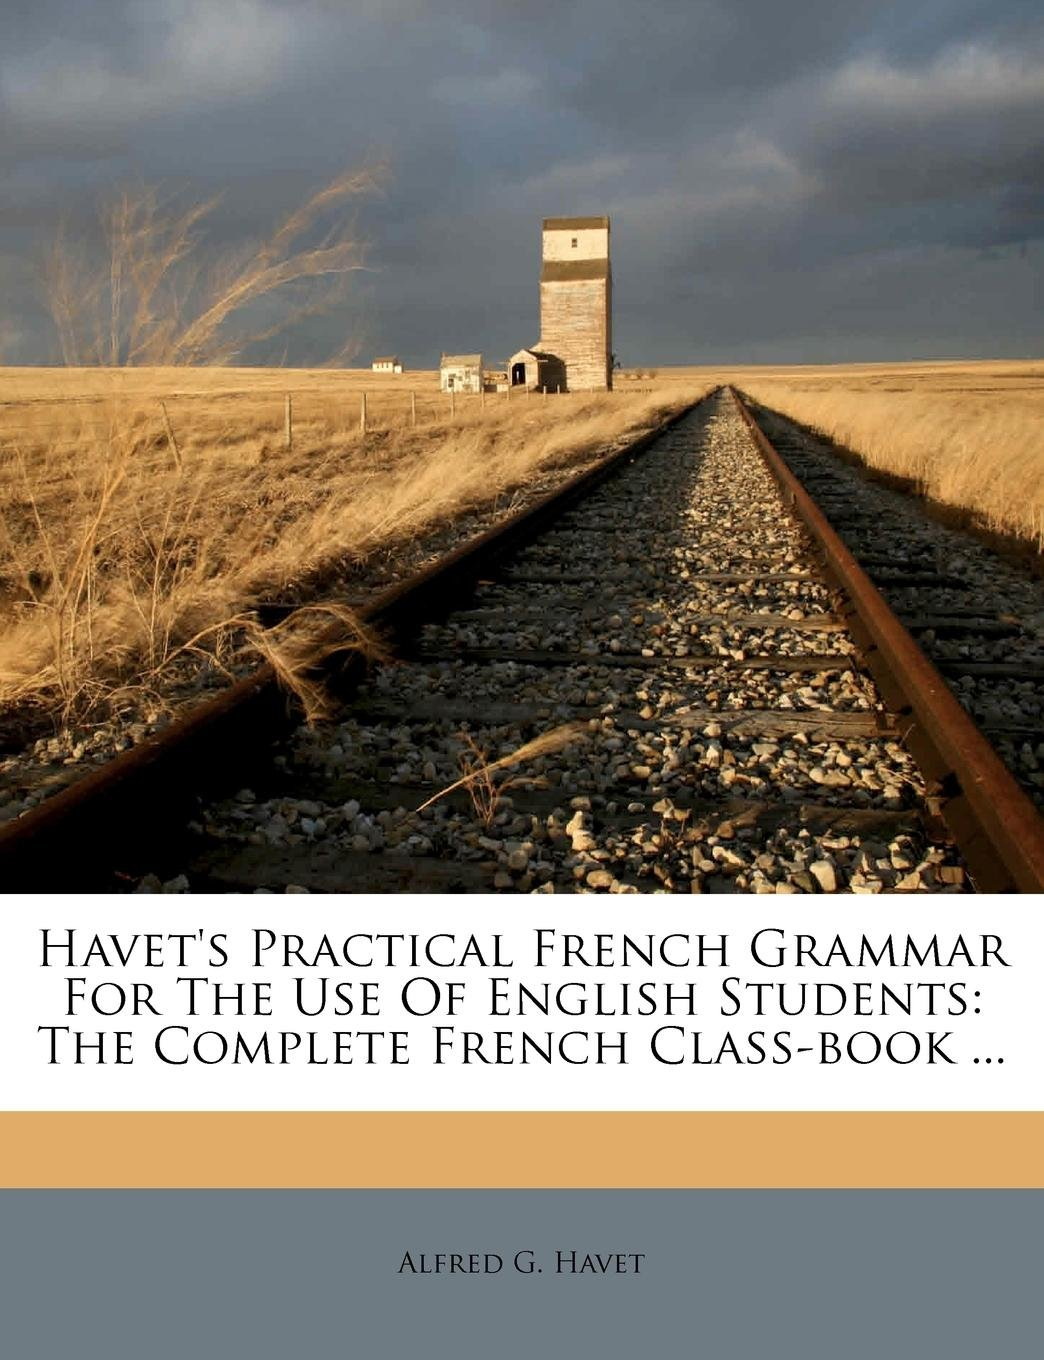 Download Havet's Practical French Grammar For The Use Of English Students: The Complete French Class-book ... pdf